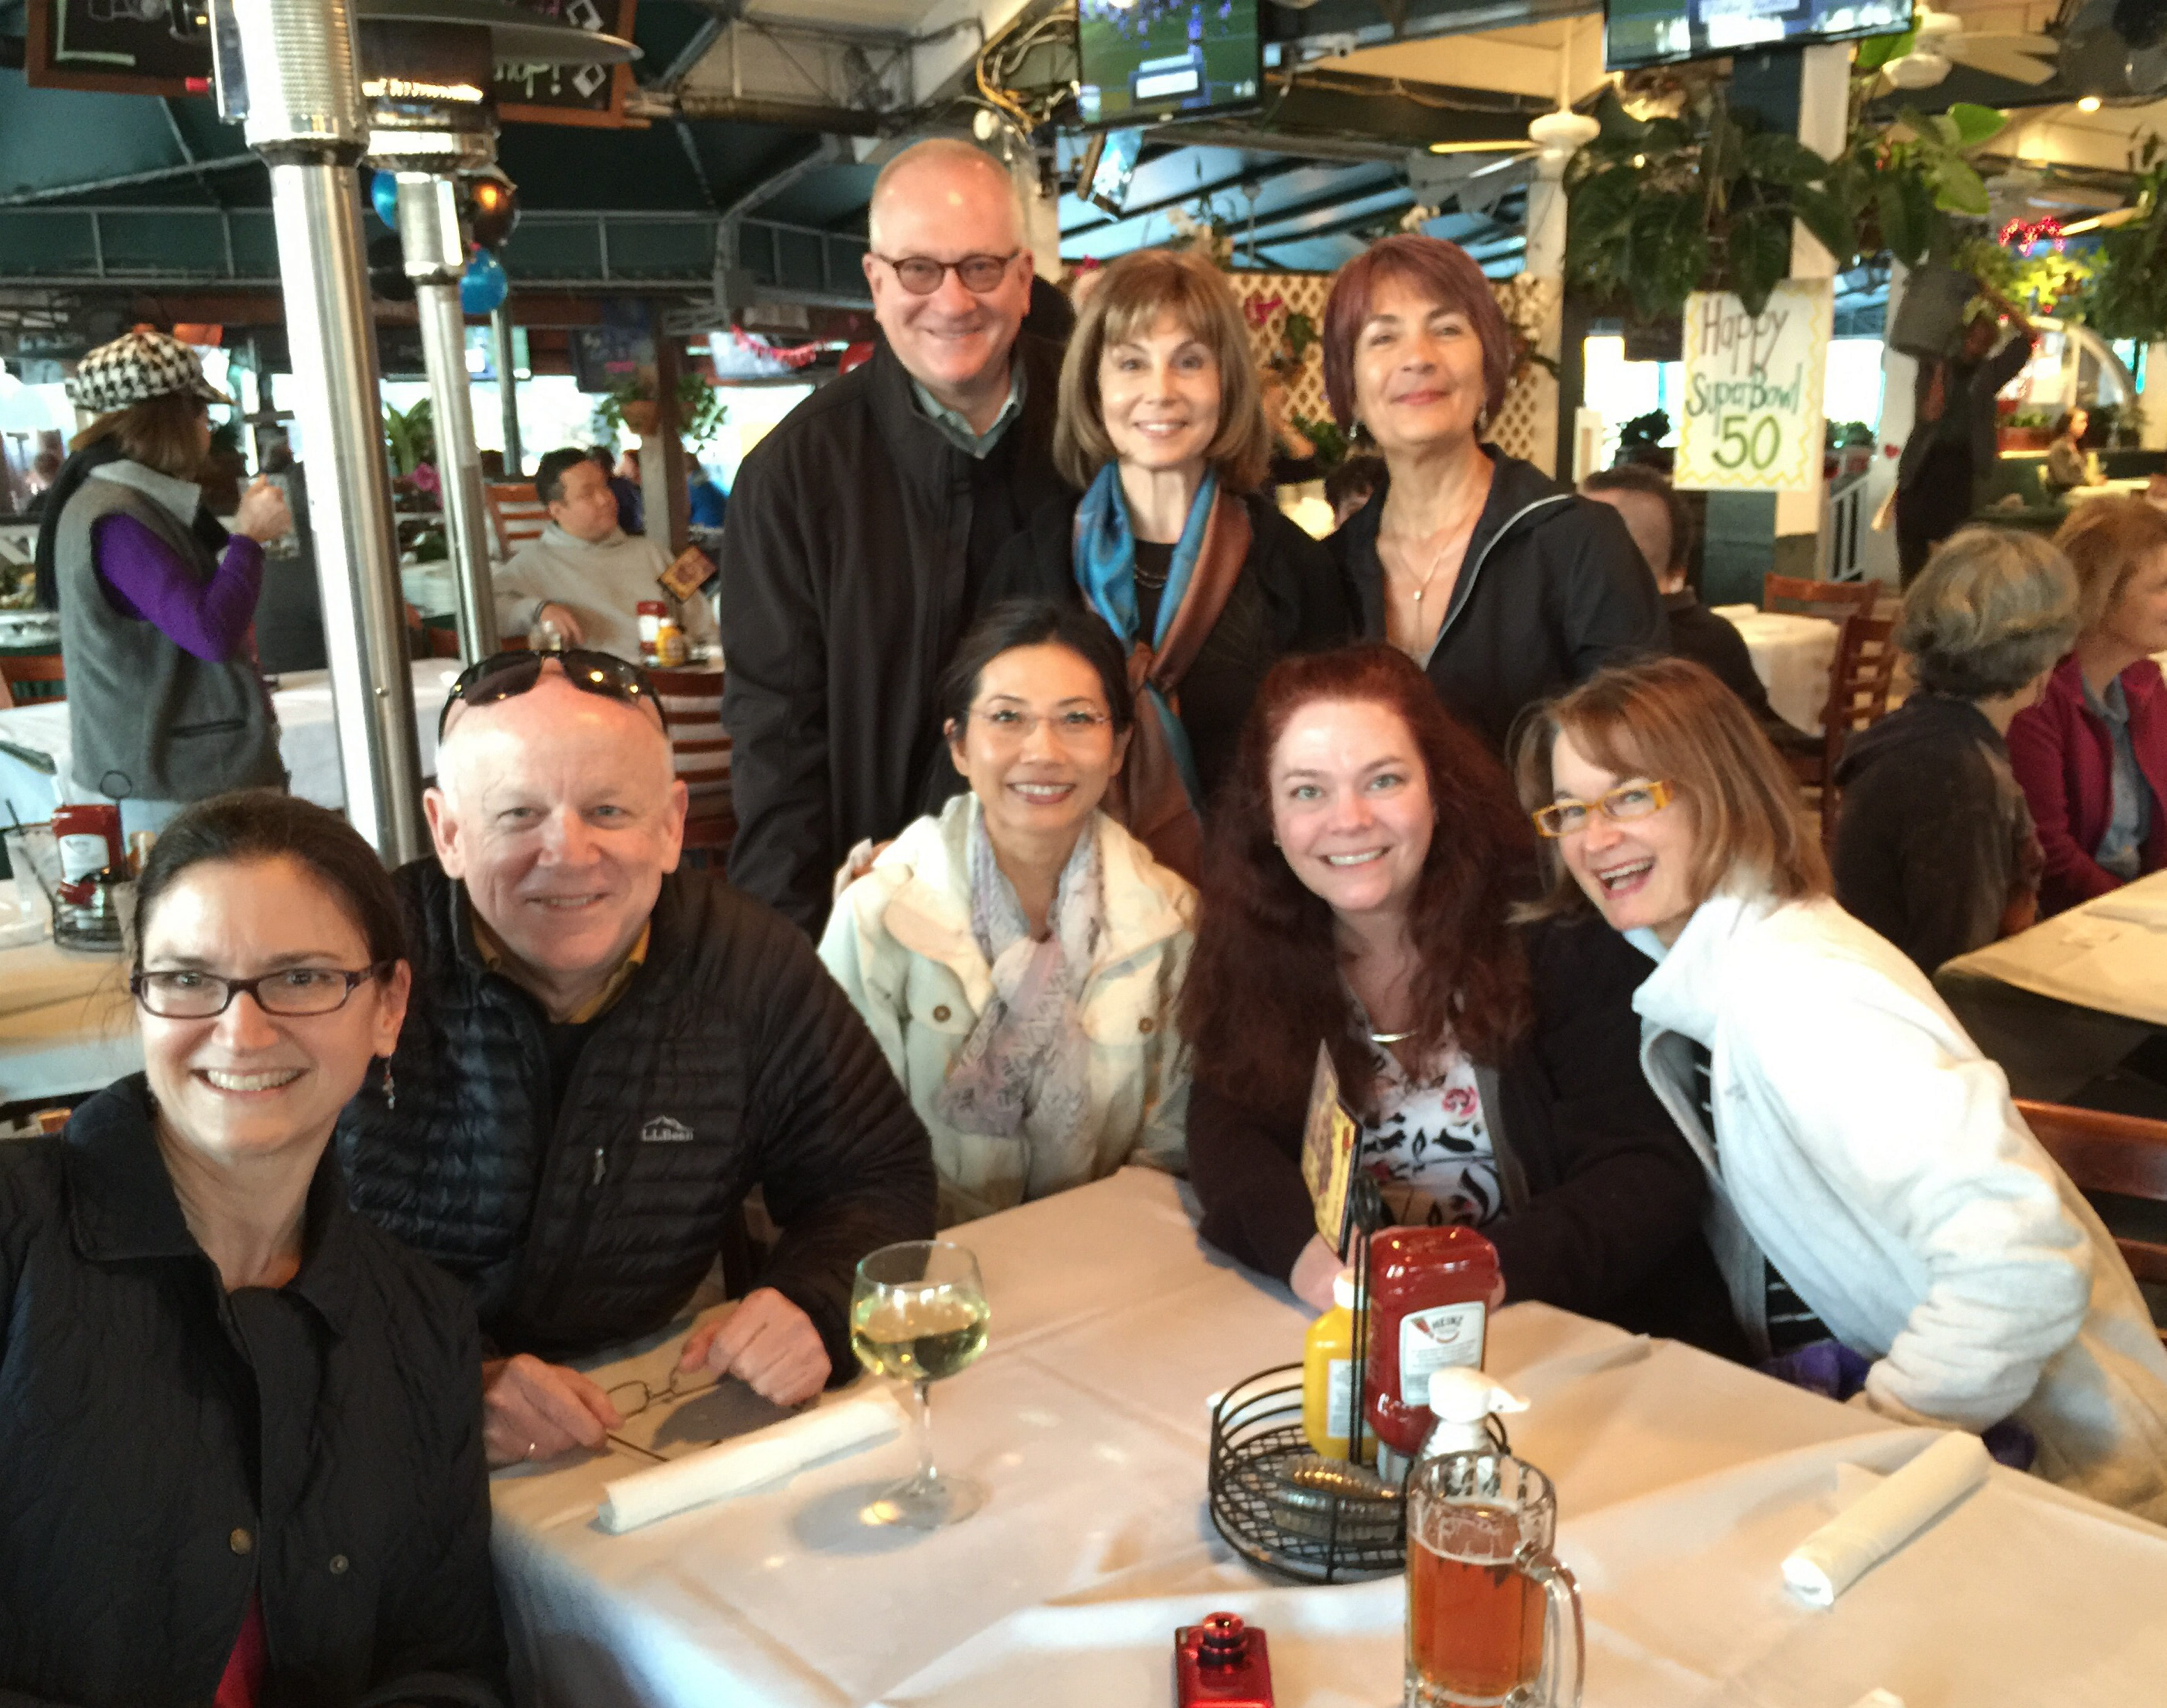 The BPO celebrates its success at a Super Bowl party on Sunday. Front row, from left, are violinists Andrea Blanchard Cone and Doug Cone, cellist Feng Hew, violinists Amy Licata and Diana Sachs. In back, from left, are Executive Director Dan Hart, Music Director JoAnn Falletta and violist Natasha Piskorsky.